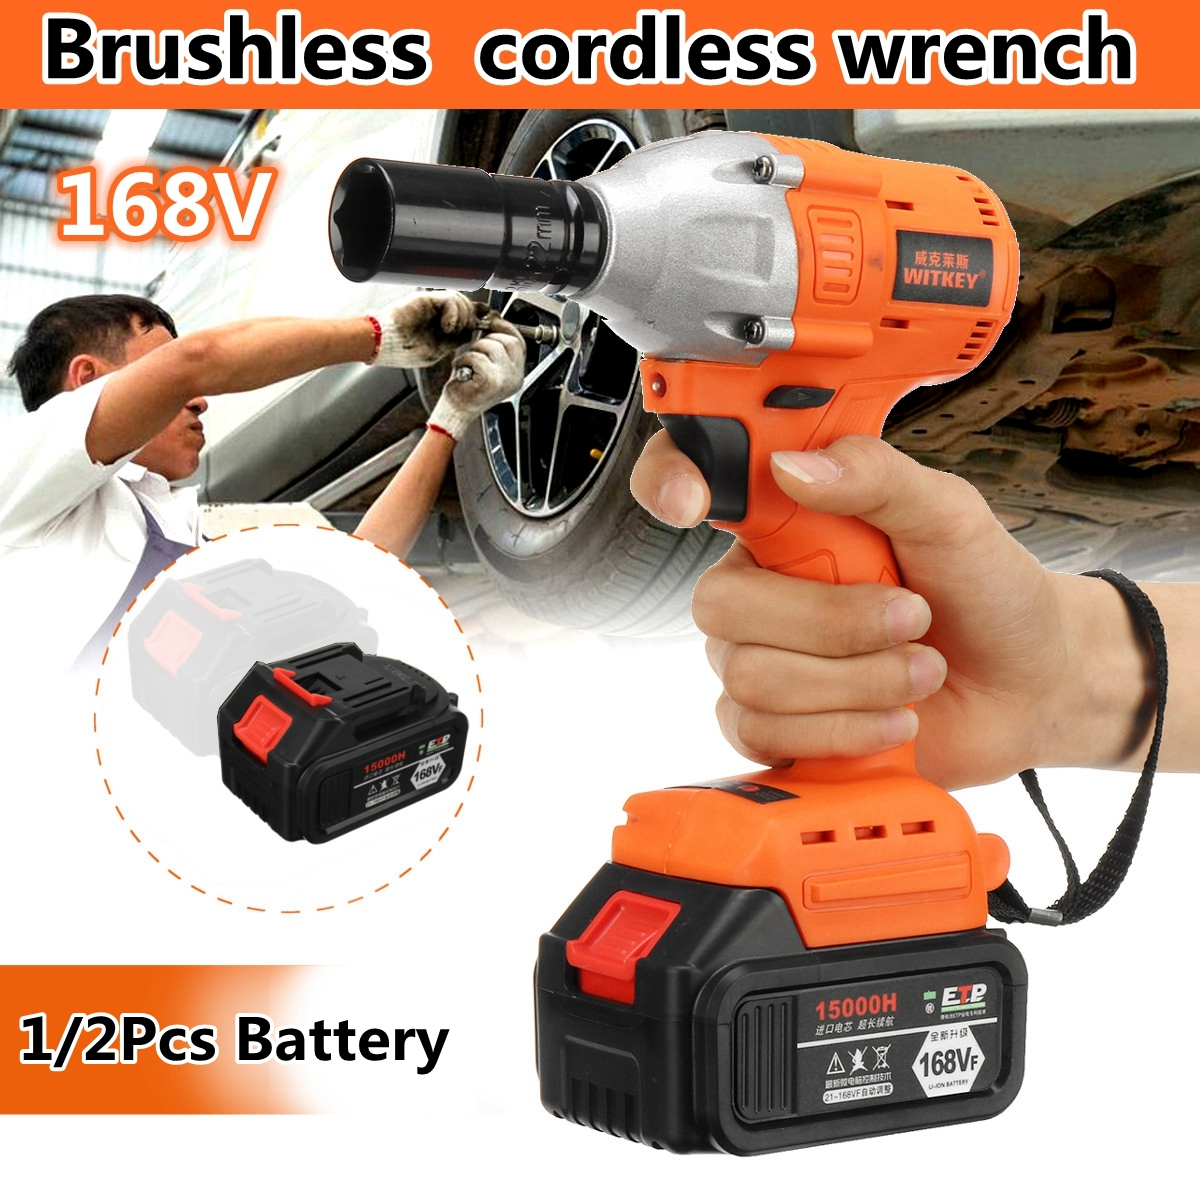 WK-168W-2 168V Cordless Power Wrench Brushless 520Nm Torque Electric Wrench Power Tools